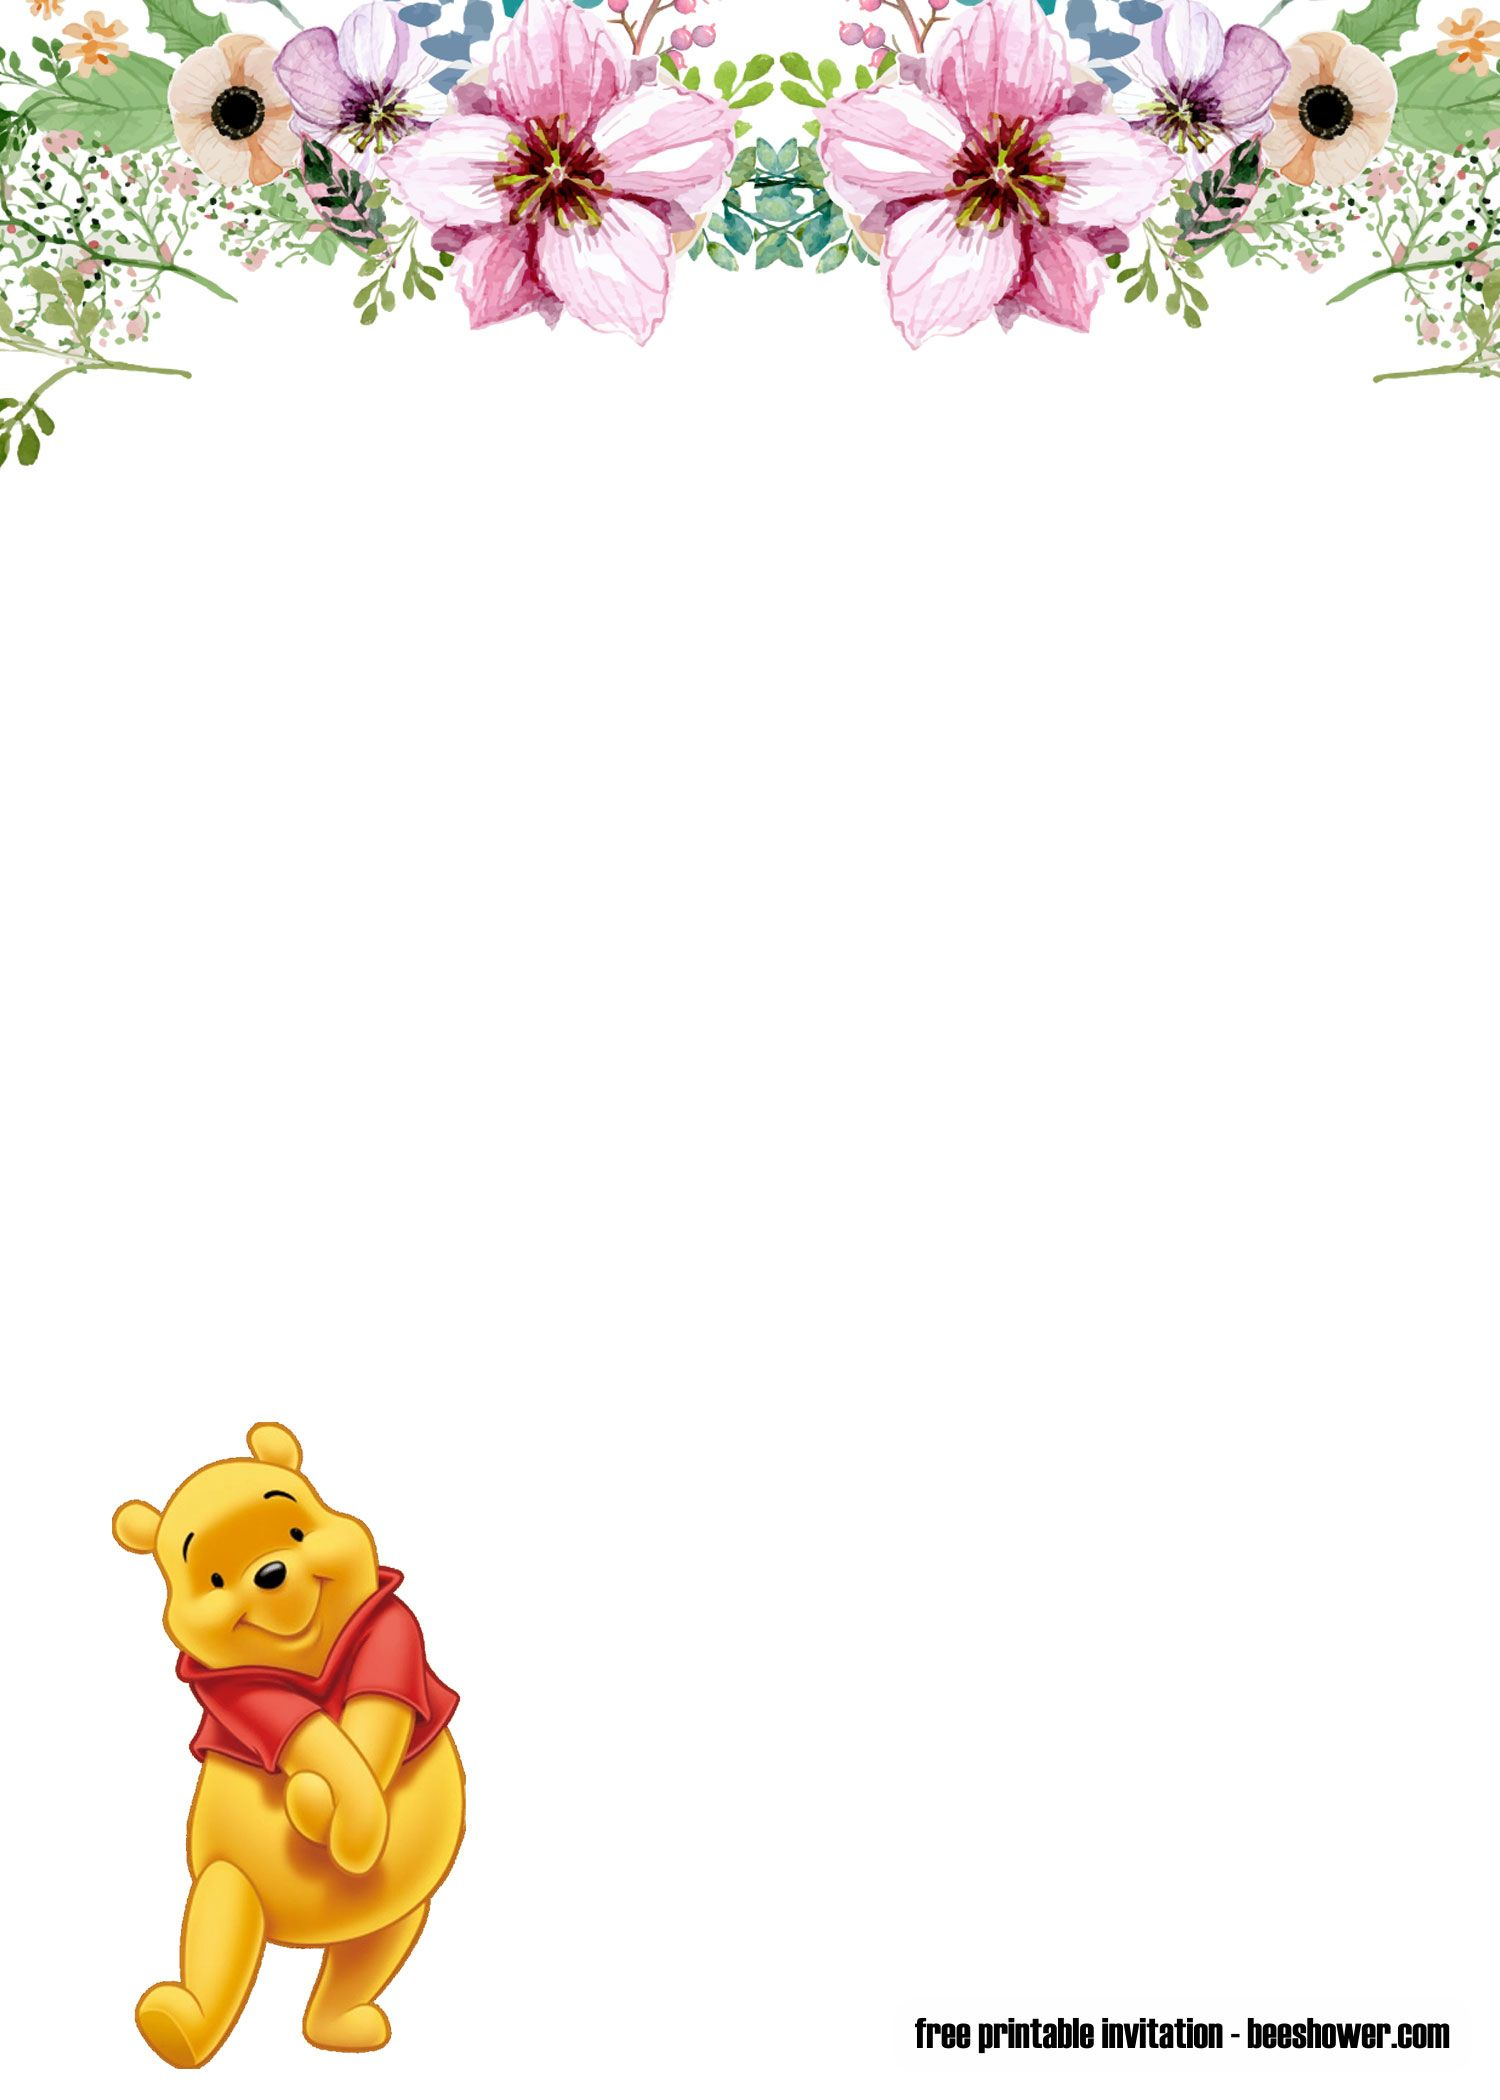 photo about Printable Winnie the Pooh Baby Shower Invitations referred to as Cost-free Winnie the Pooh kid shower invites Bagvania